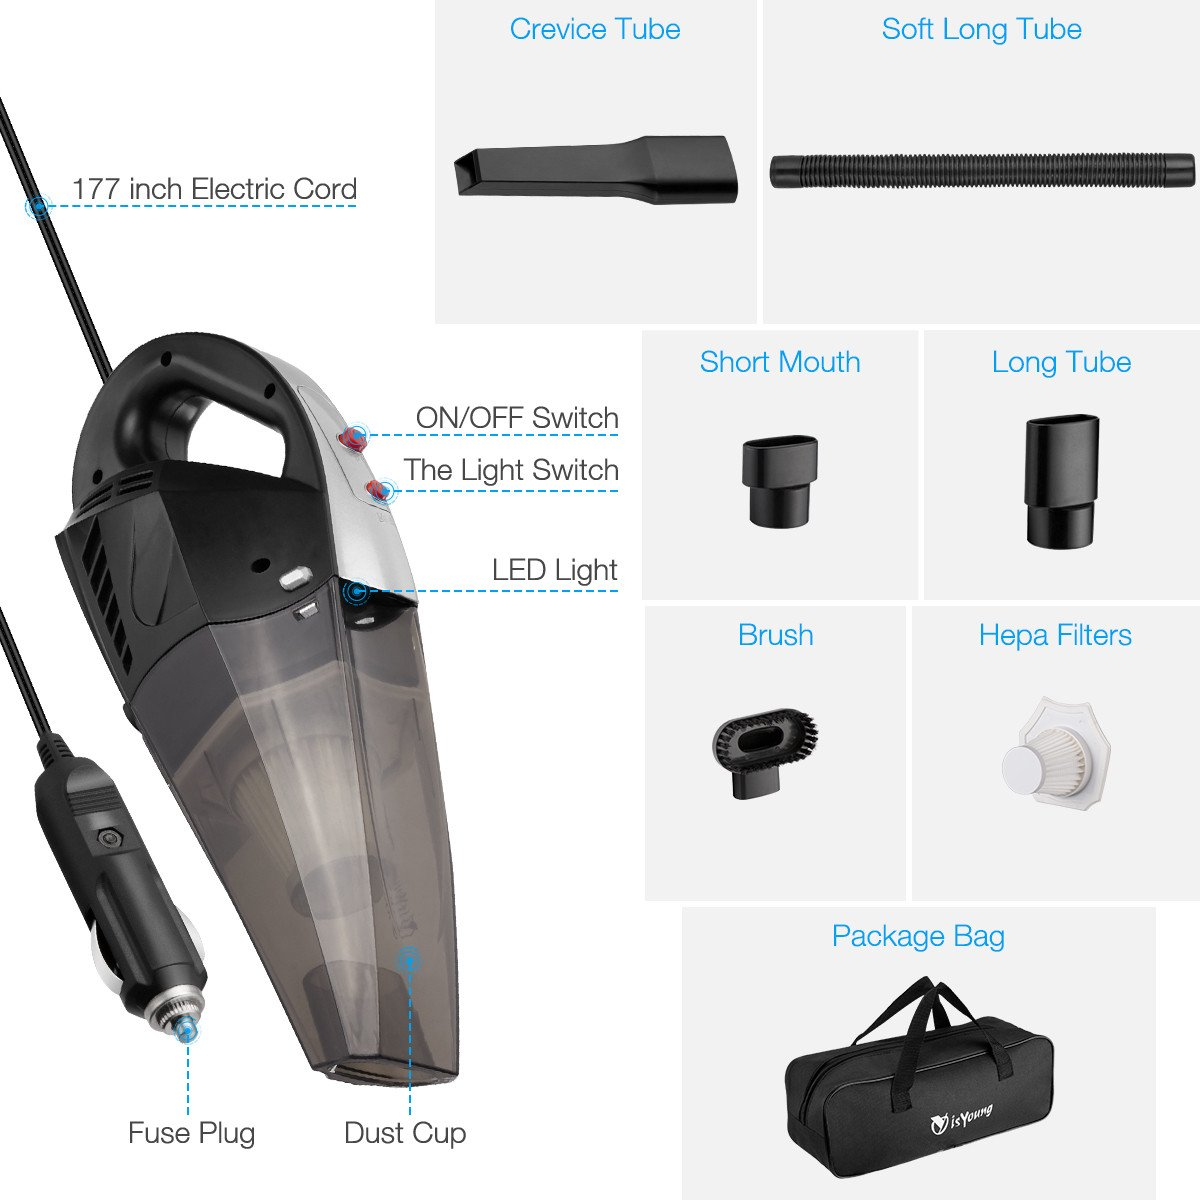 DC12-Volt Wet//Dry Handheld Vacuum Cleaner with Carrying Bag 4500PA Stronger Suction Portable Auto Vacuum Cleaner One Extra HEPA Filter isYoung Car Vacuum Cleaner with LED Light Black Silver 4350472271